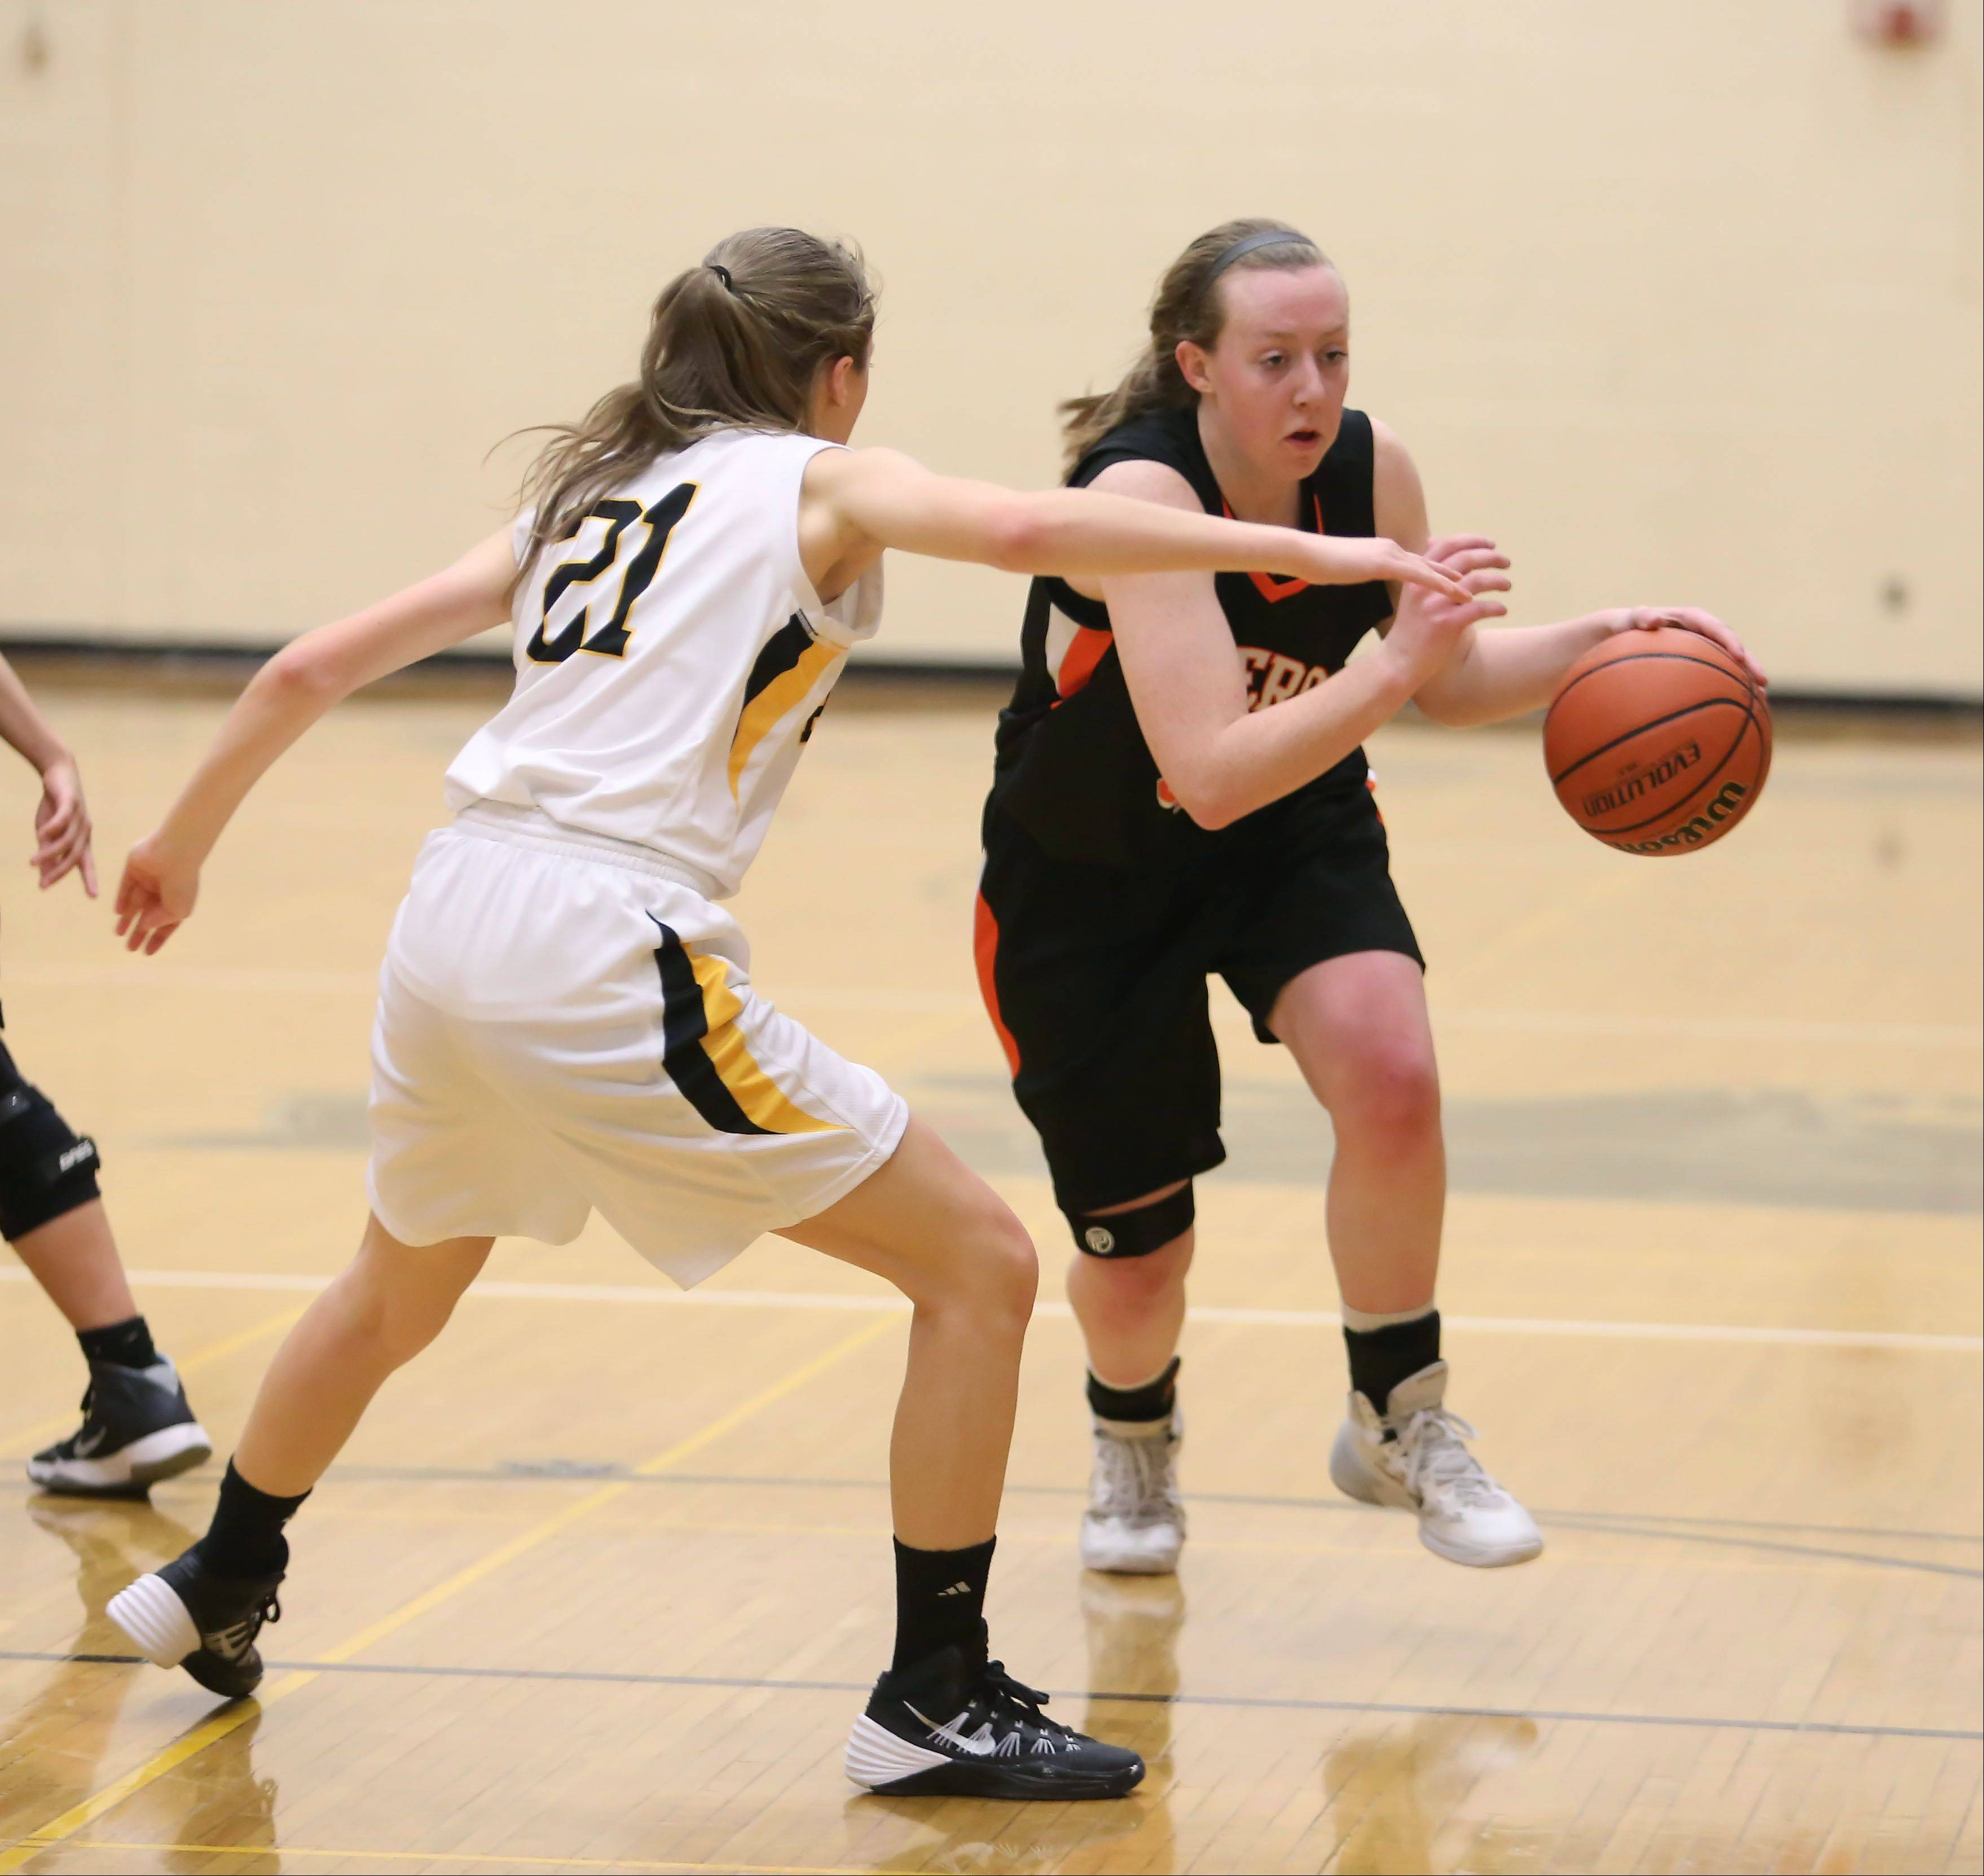 Images: Wheaton Warrenville South at Glenbard North girls basketball